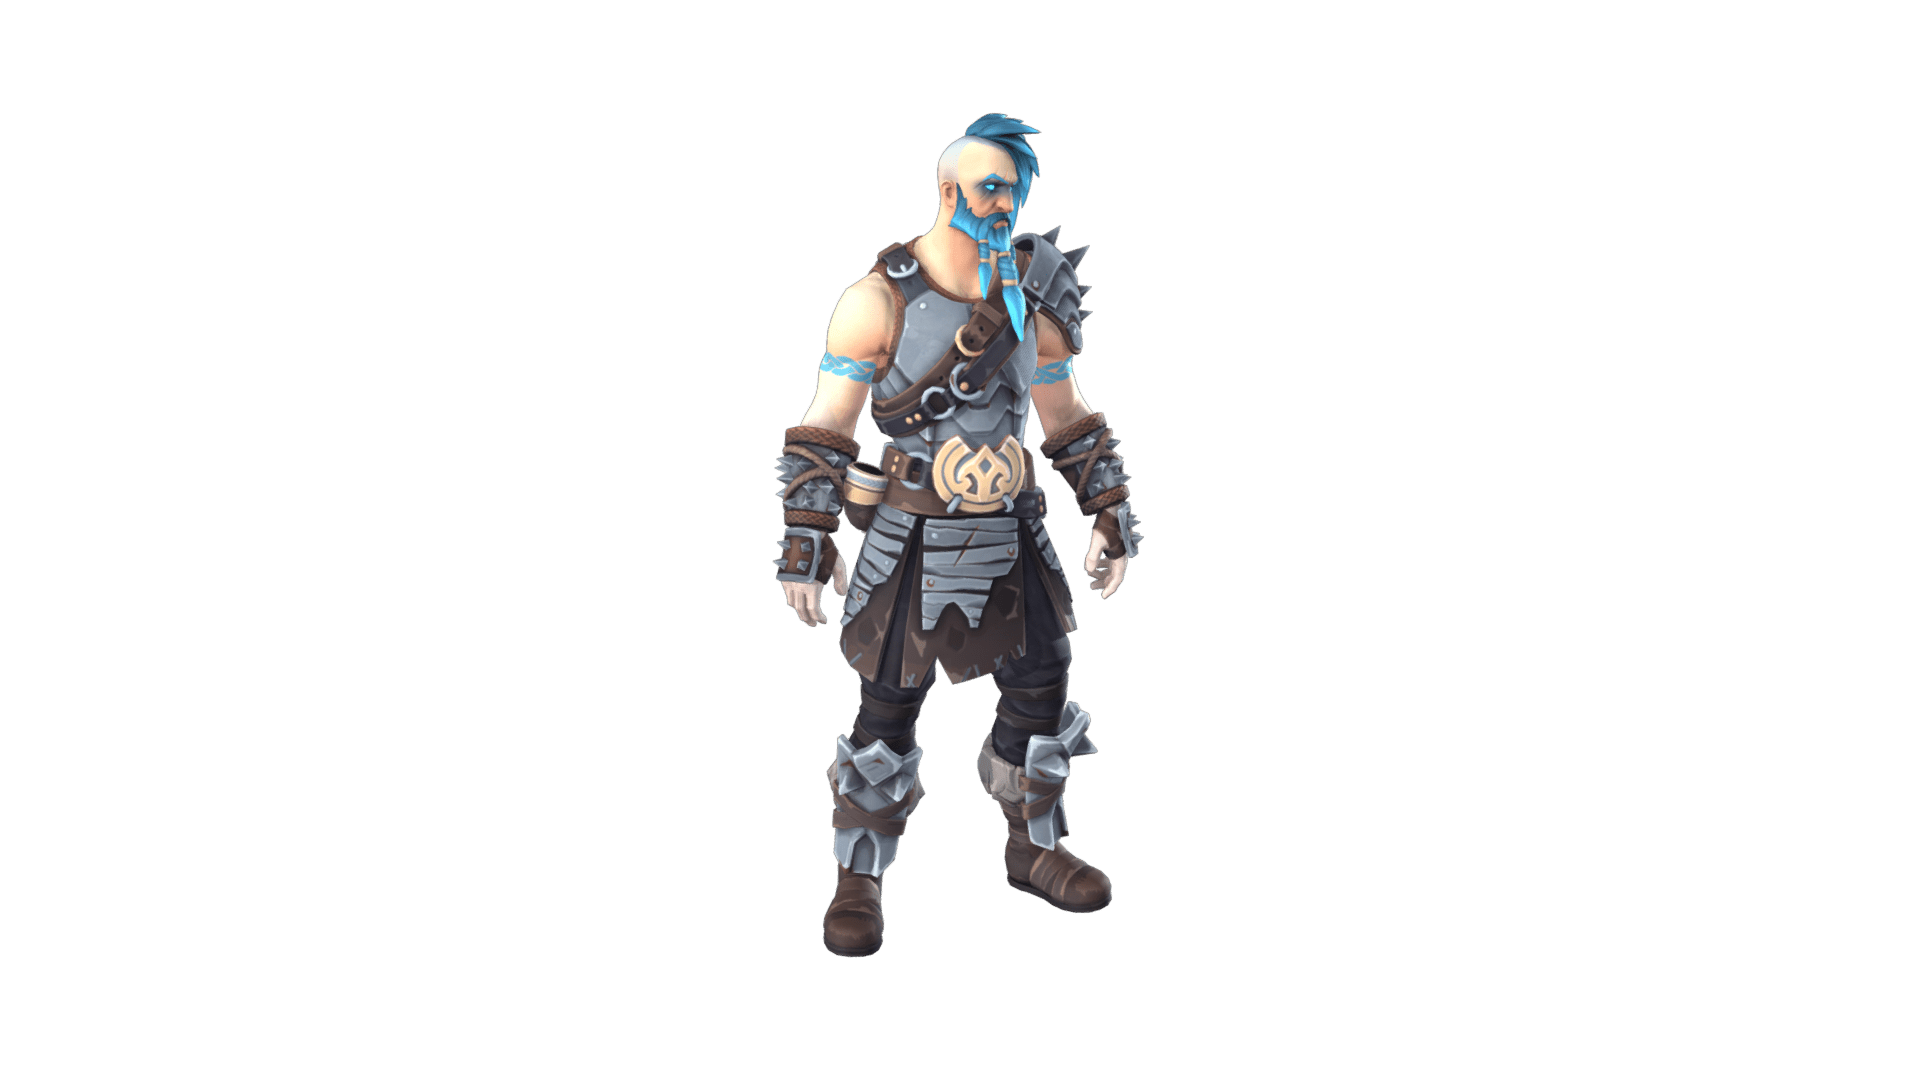 Fortnite Ragnarok Outfits Fortnite Skins